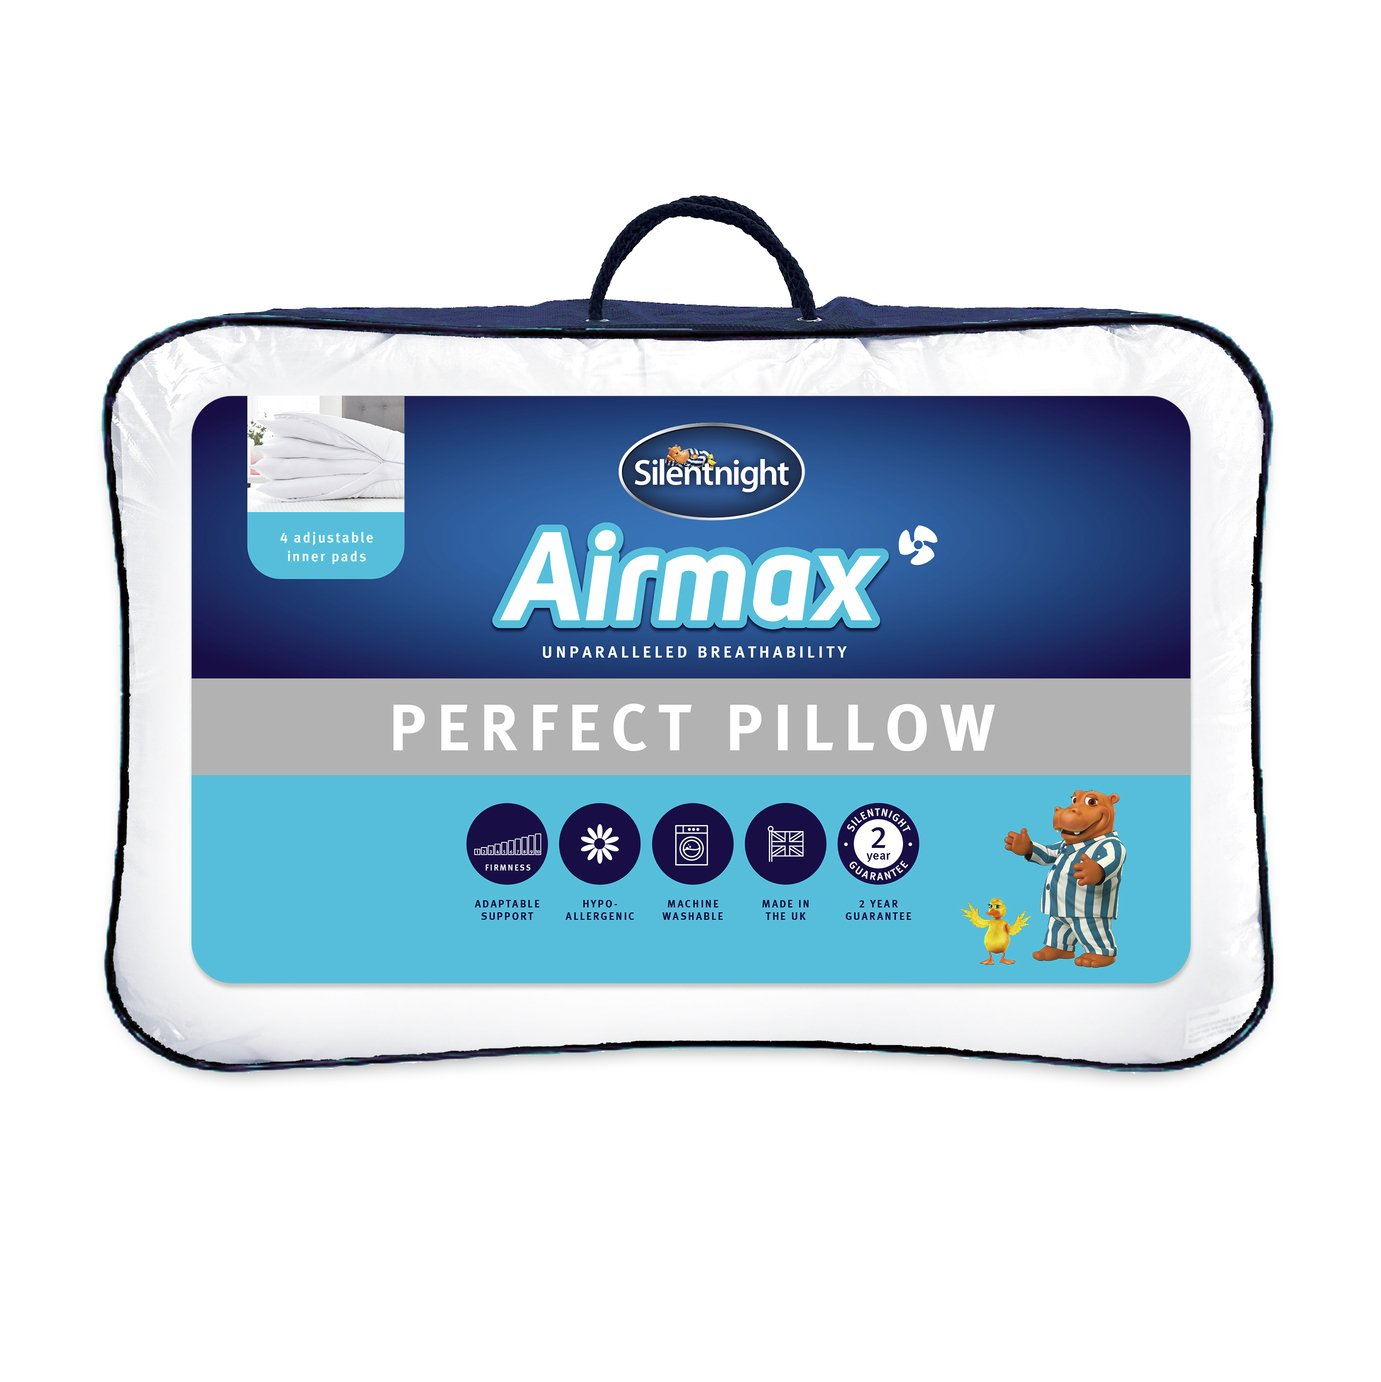 Silentnight Airmax Perfect Pillow